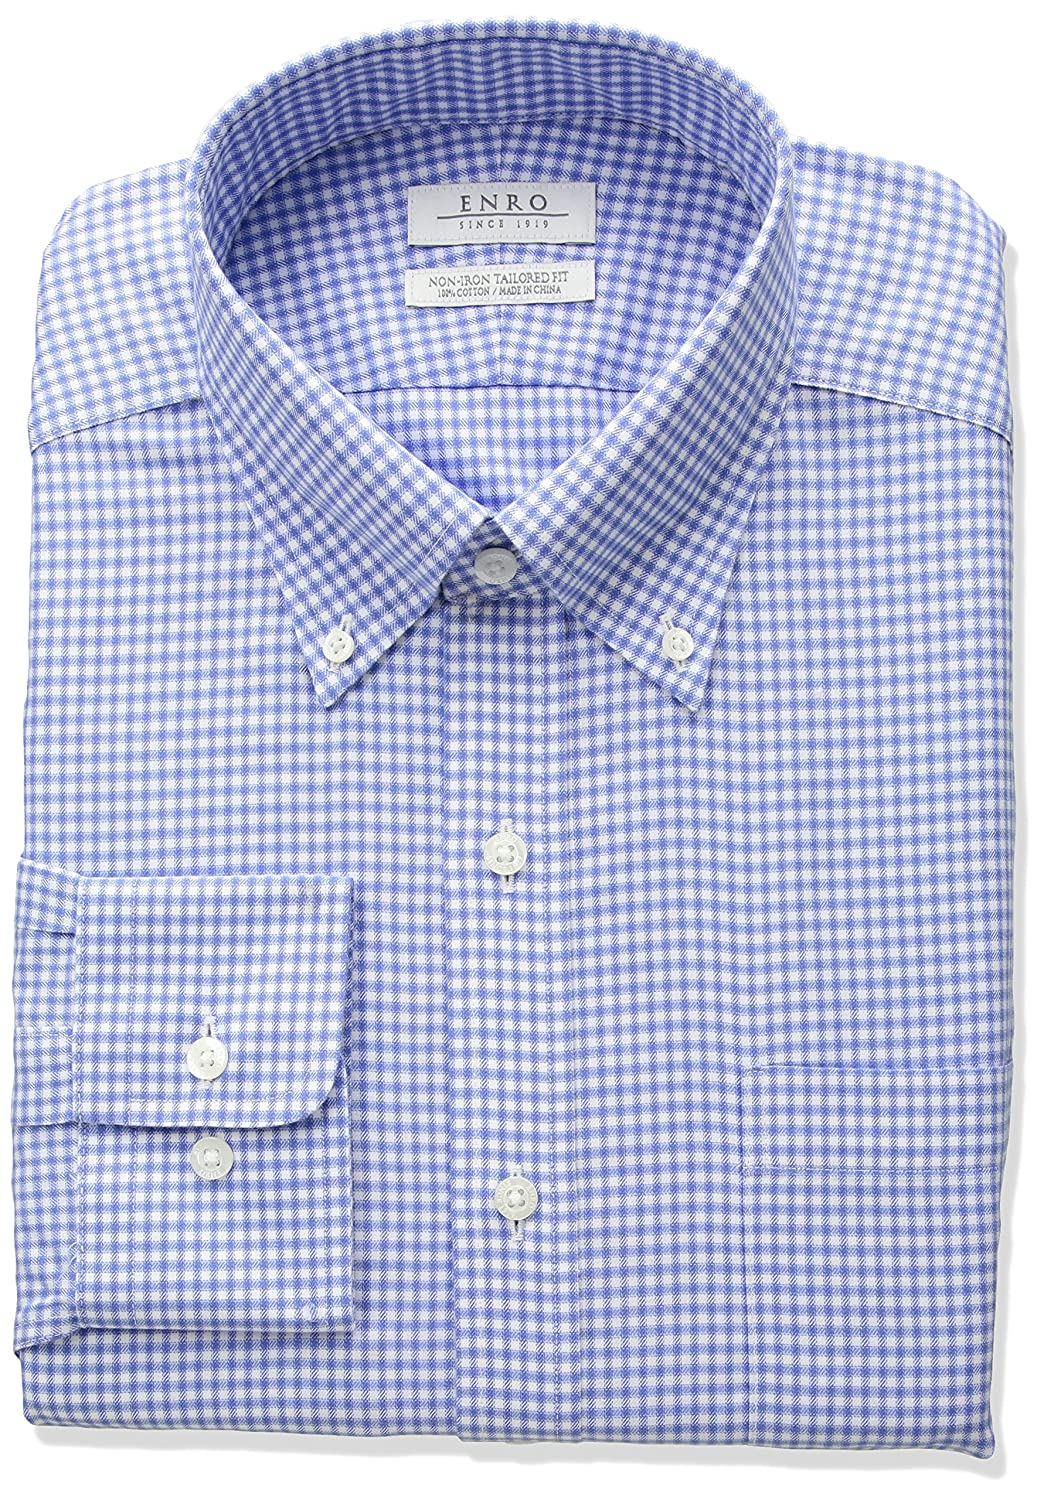 Enro Mens Tailored Fit Non Iron Cotton Check Dress Shirt At Amazon